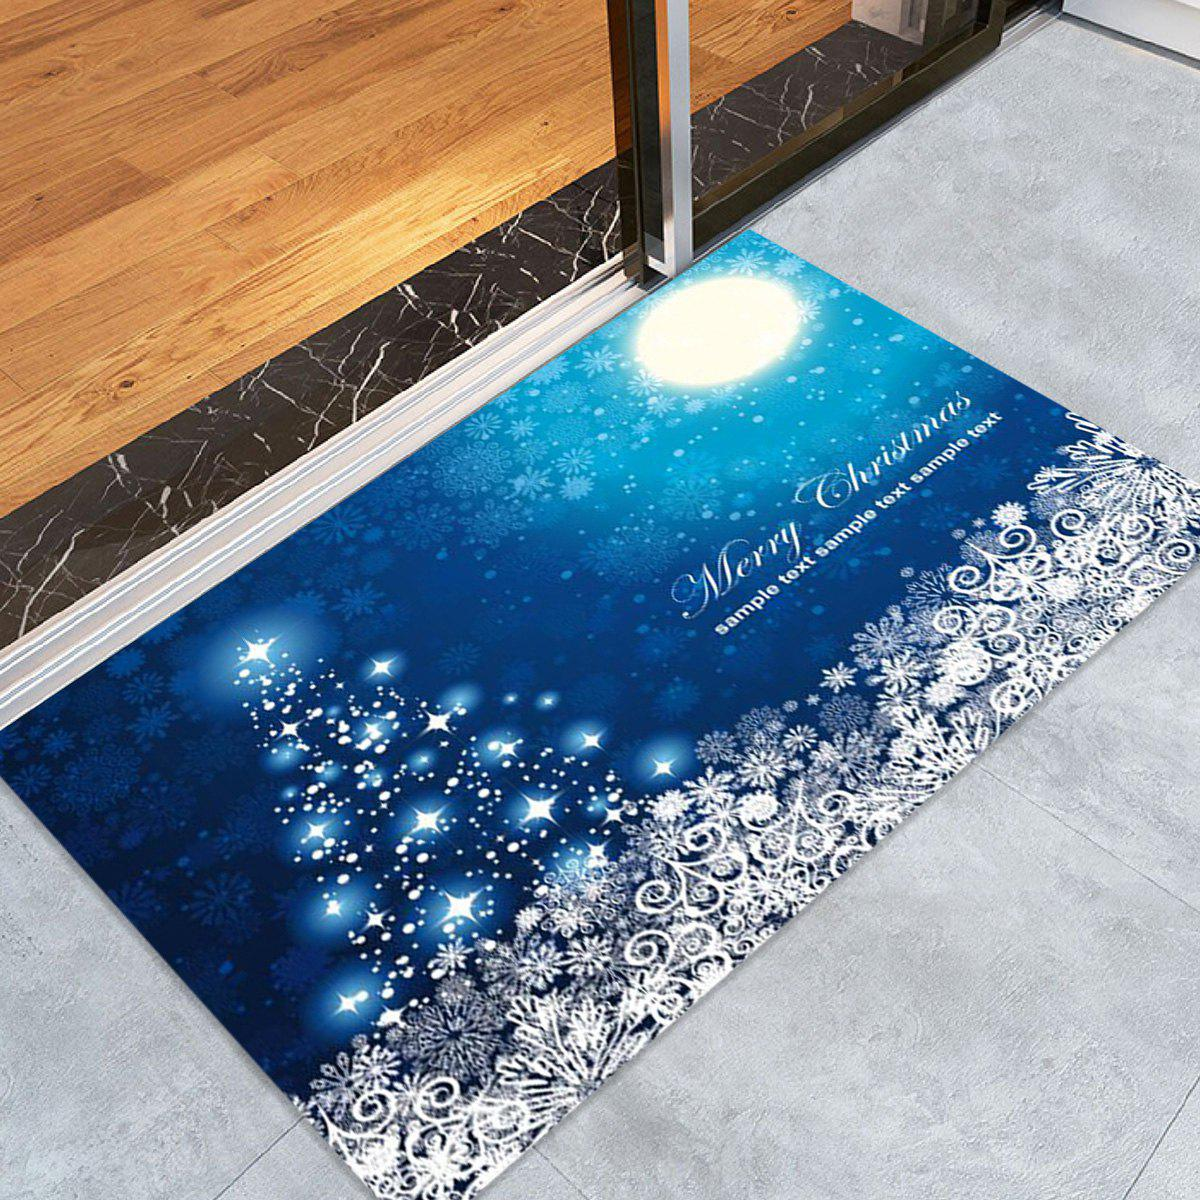 New Sparkling Christmas Tree Snowflake Print Fleece Nonslip Bath Rug